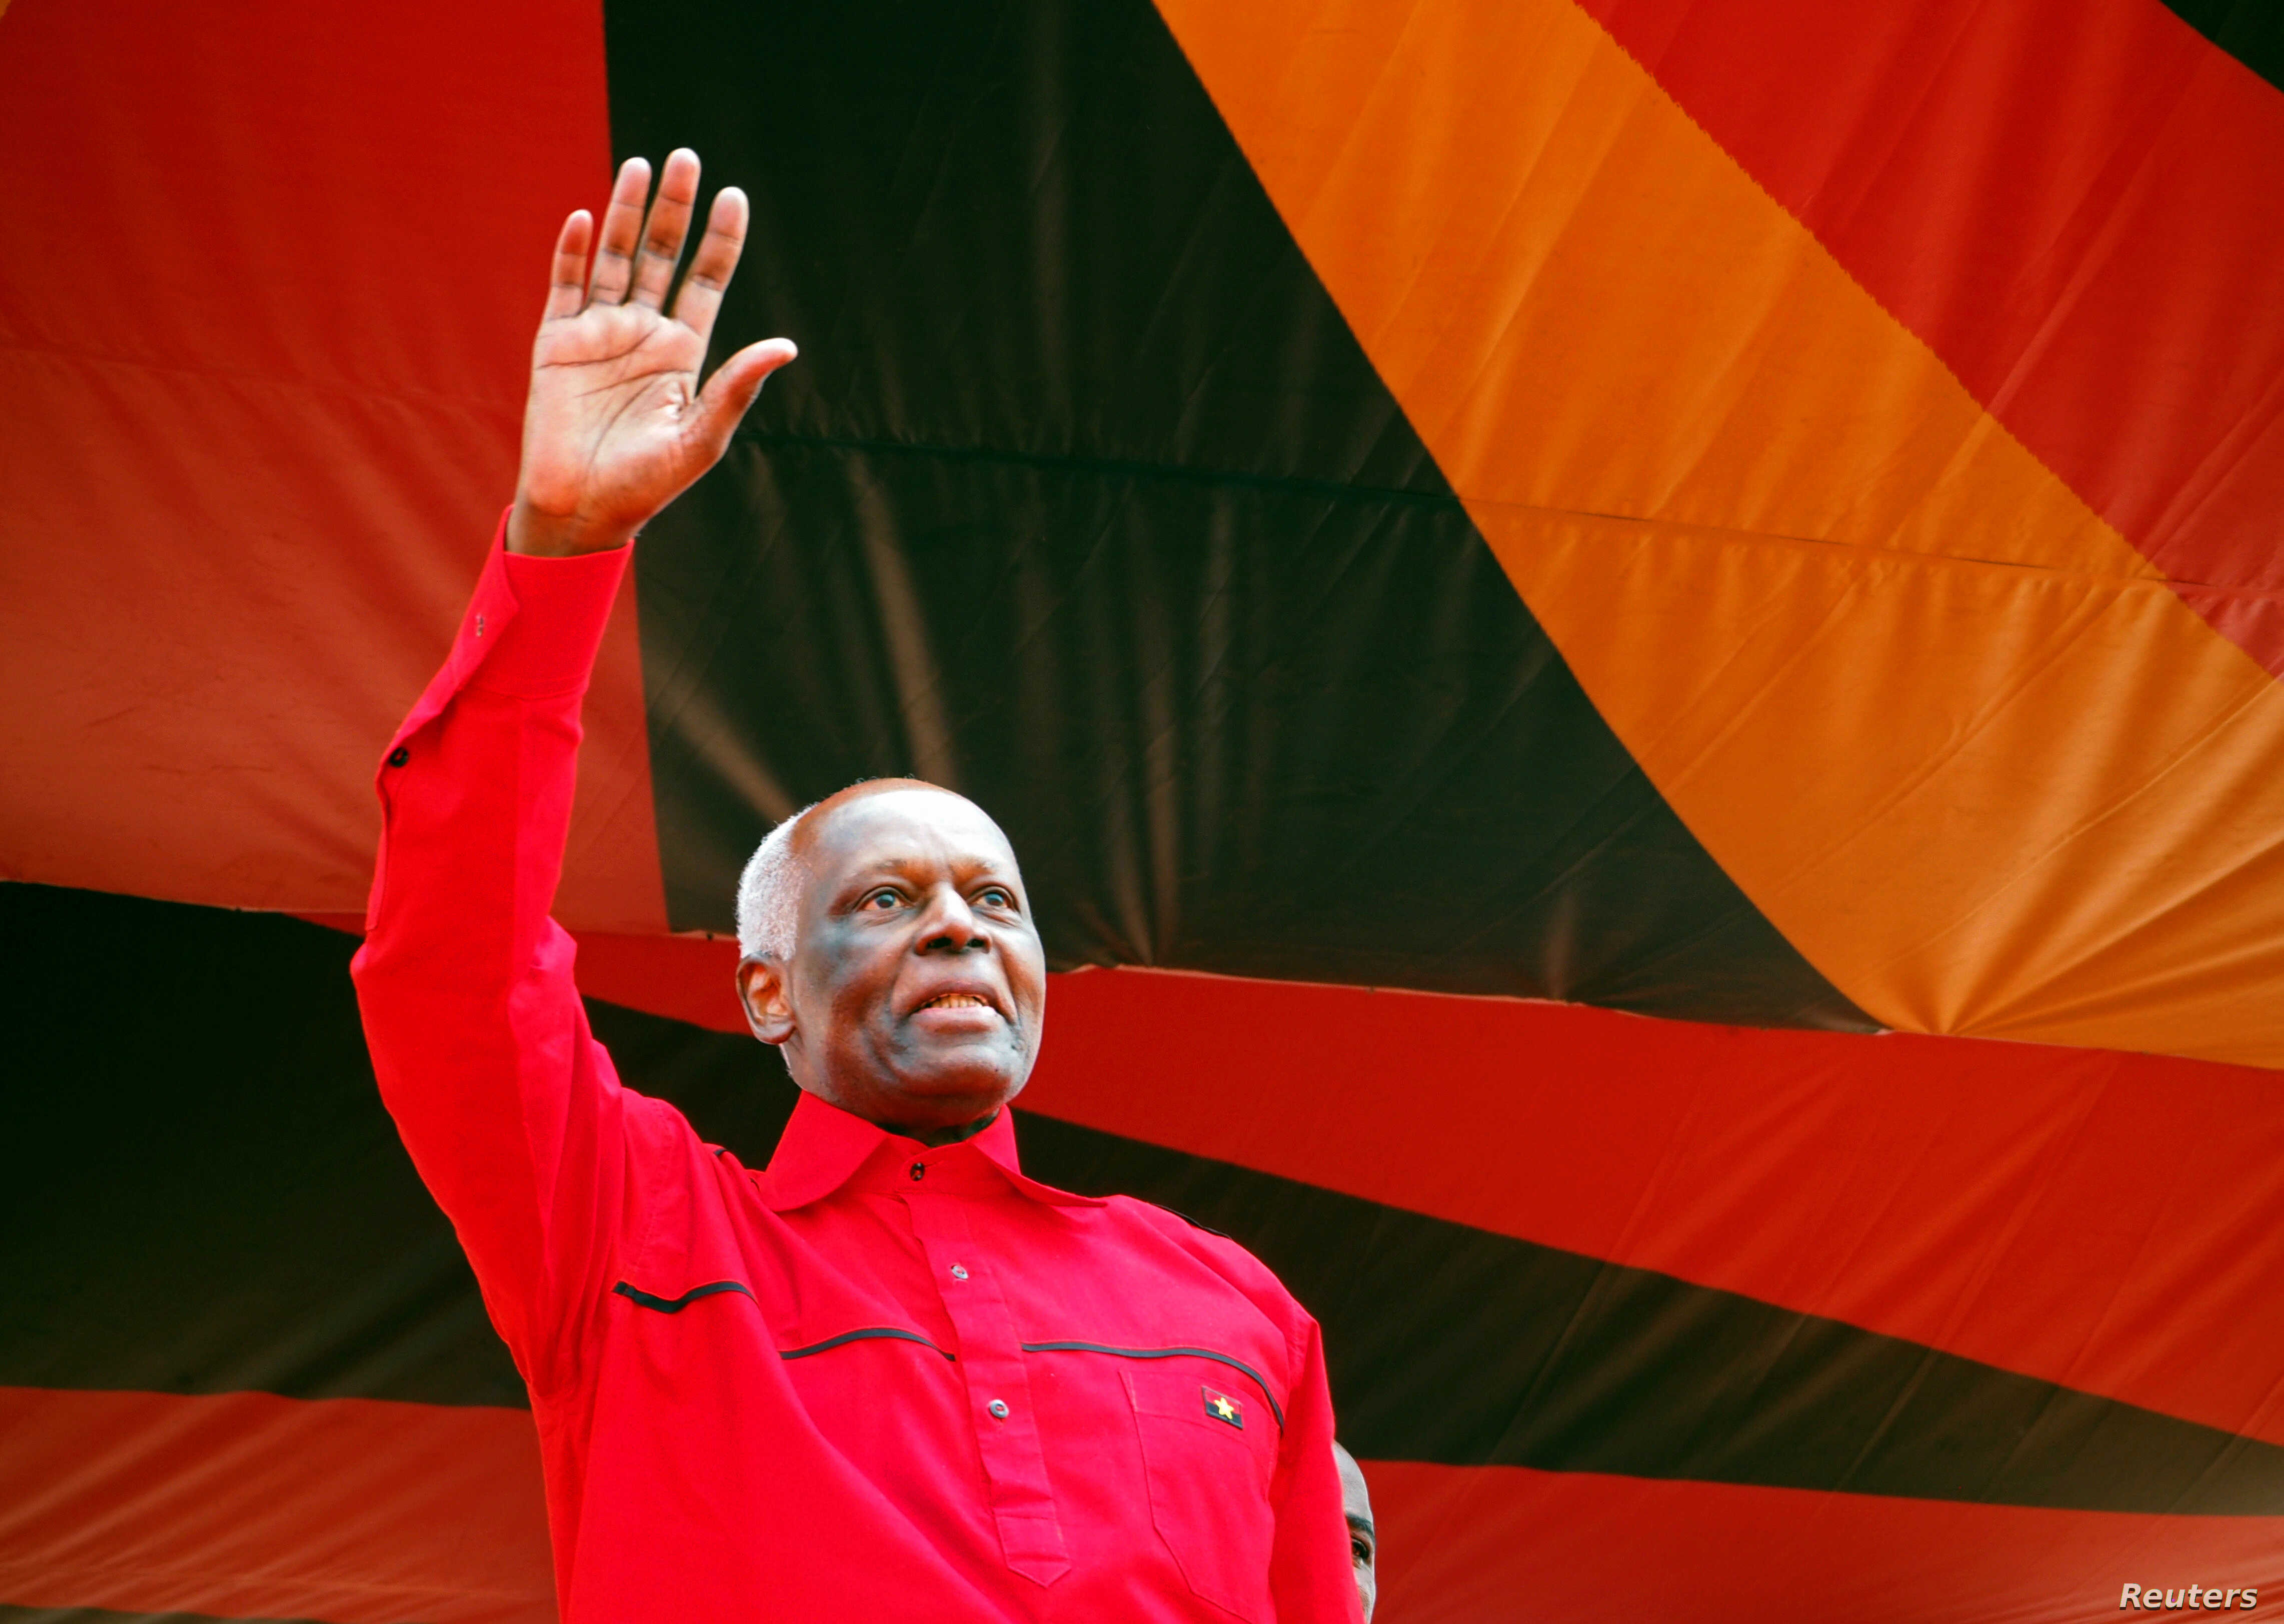 Outgoing Angolan President Jose Eduardo dos Santos greets crowds at the ruling MPLA party's final election rally in Luanda, Aug. 19, 2017.